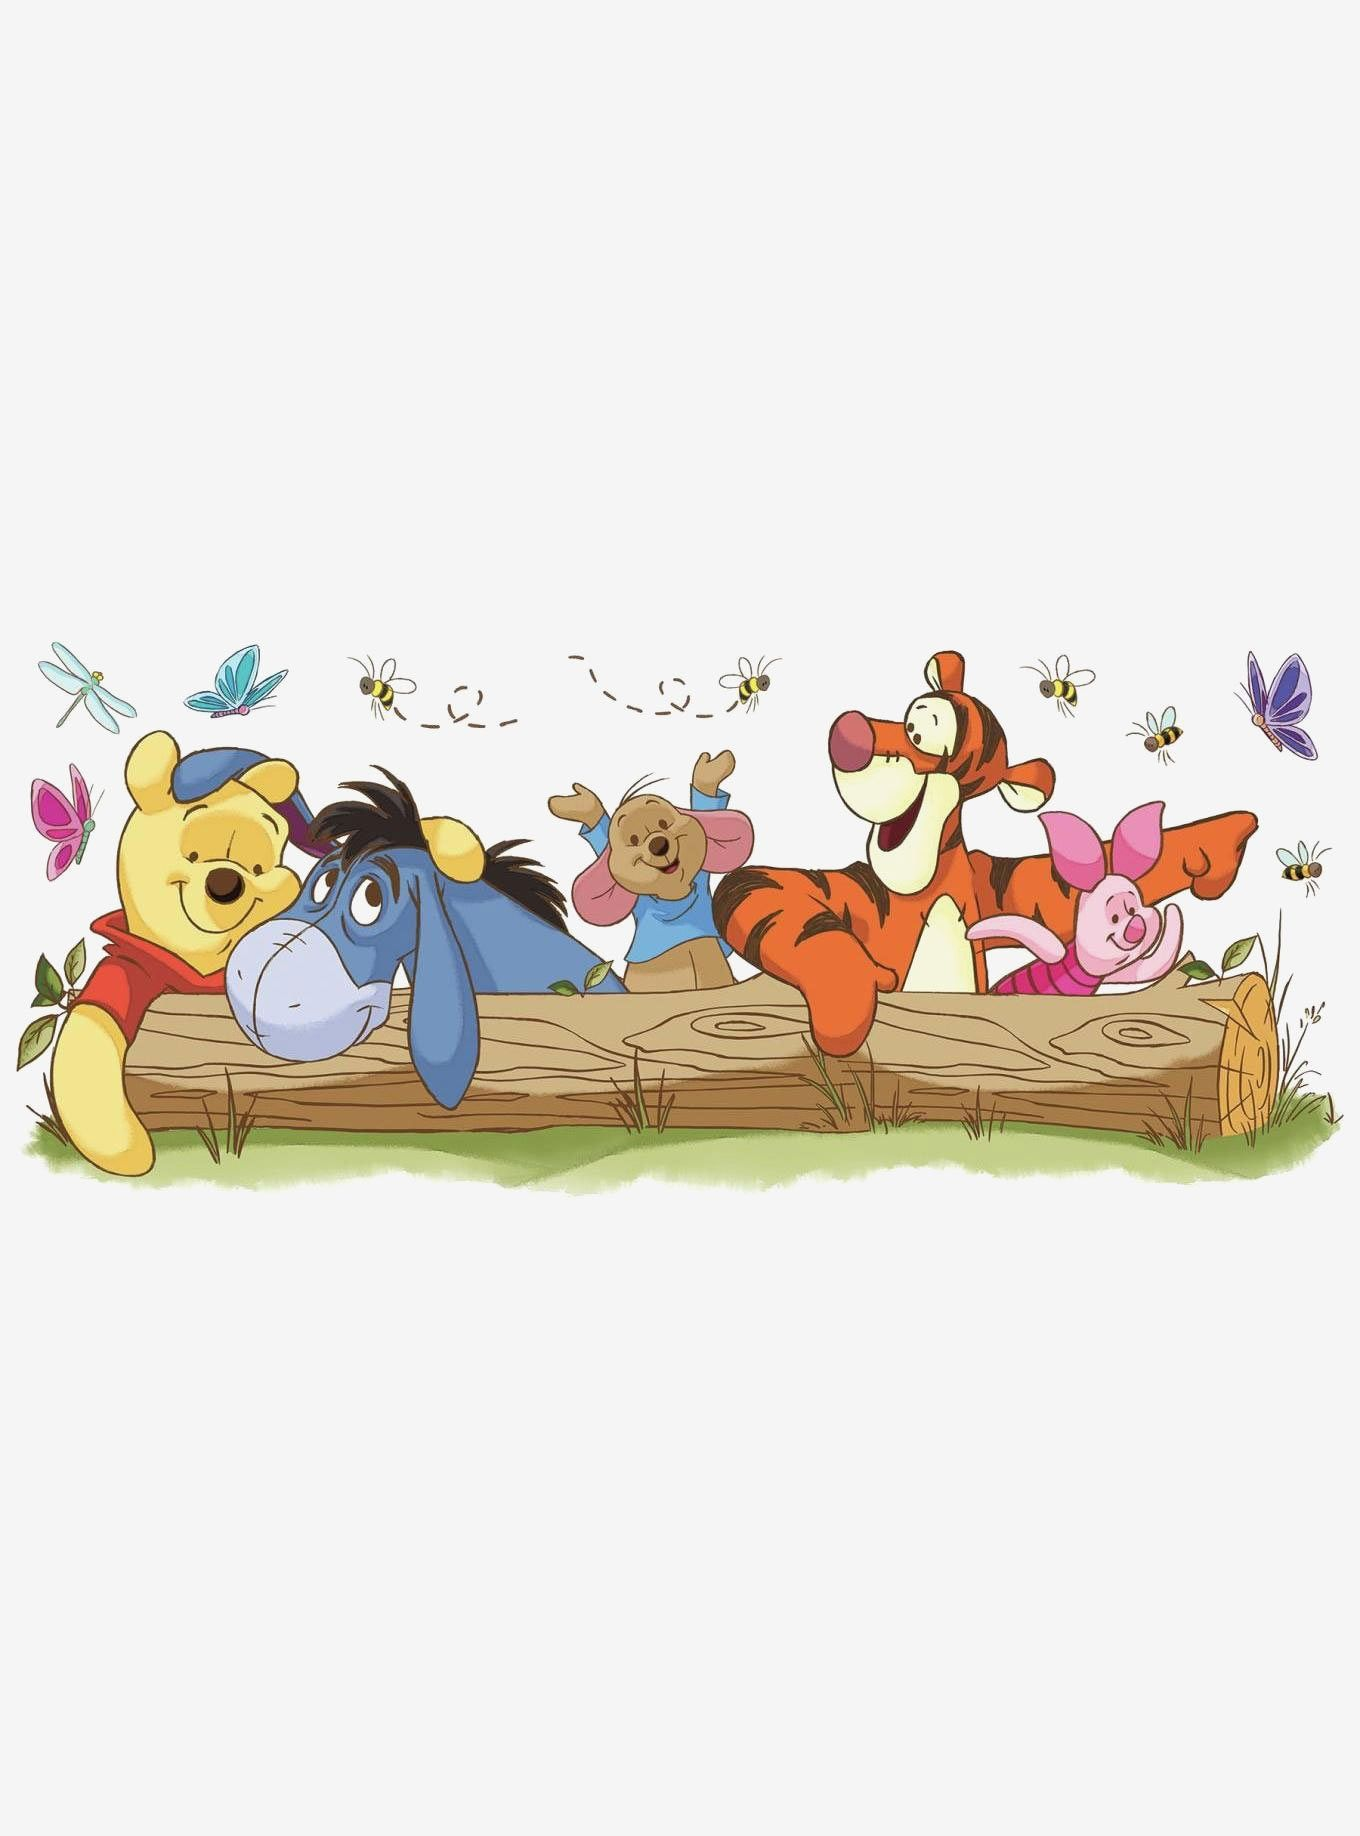 Disney Winnie The Pooh: Pooh & Friends Outdoor Fun Peel And Stick Giant Wall Decals